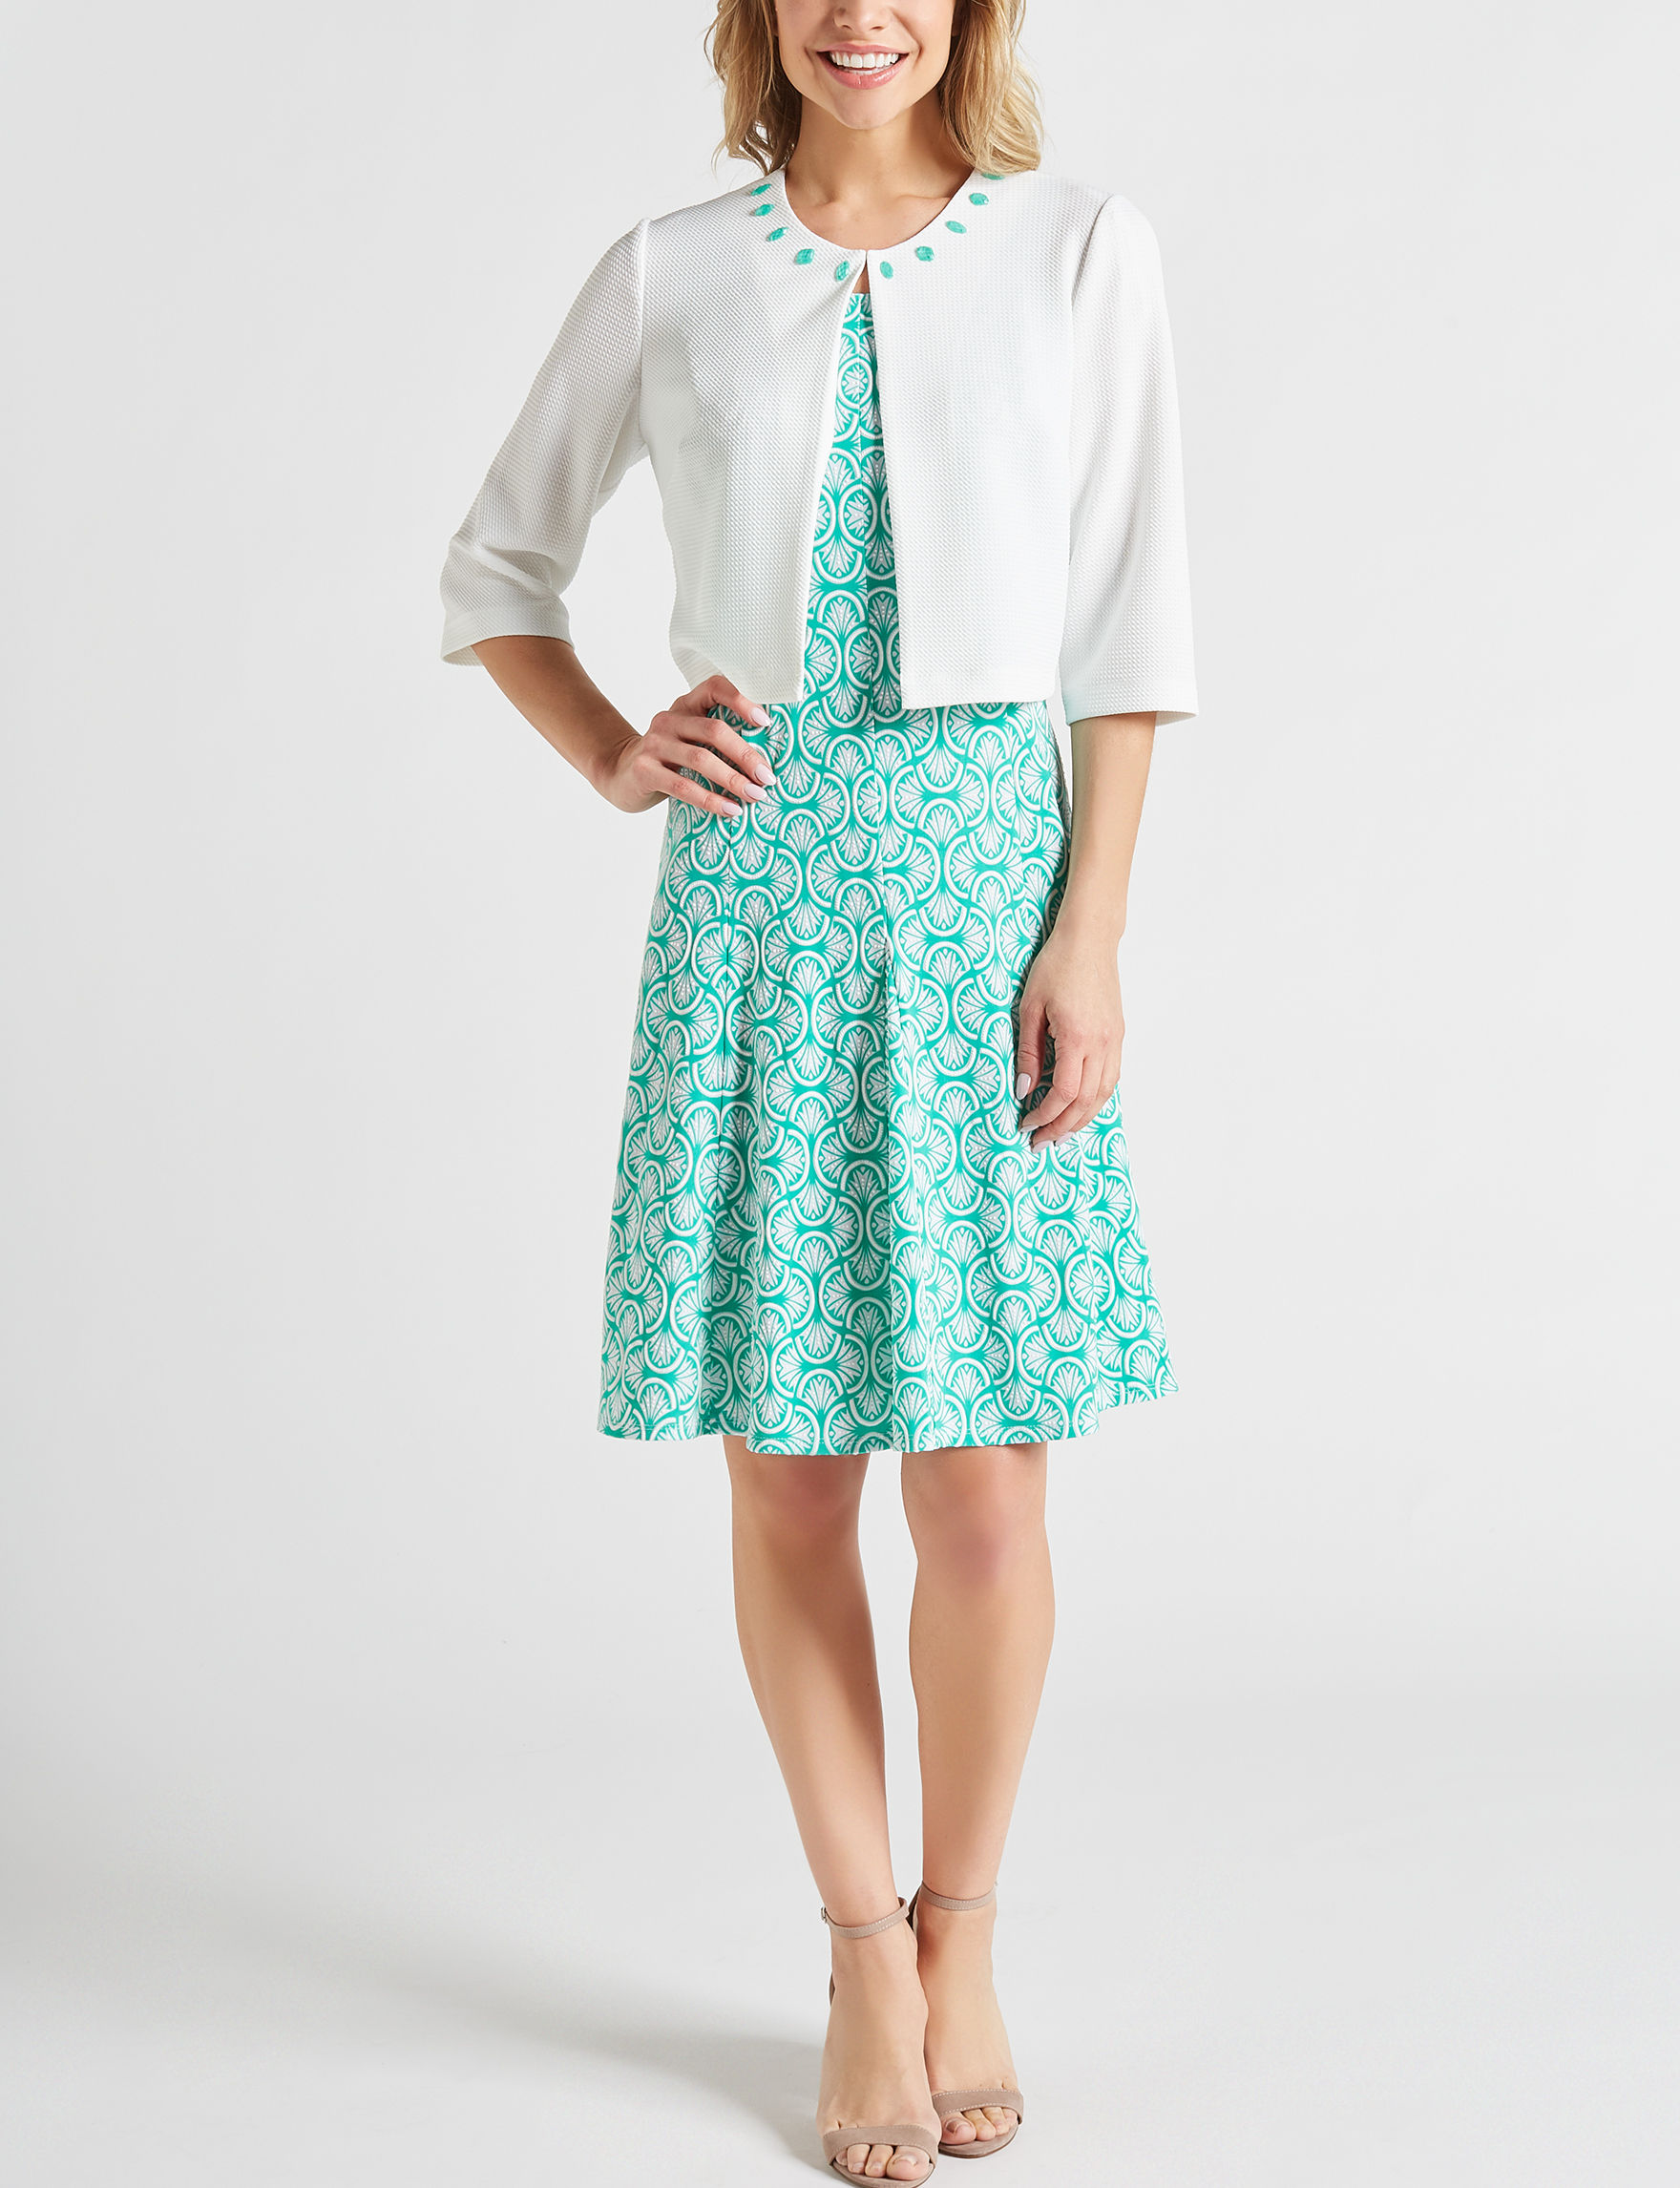 Perceptions Turquoise Everyday & Casual Jacket Dresses